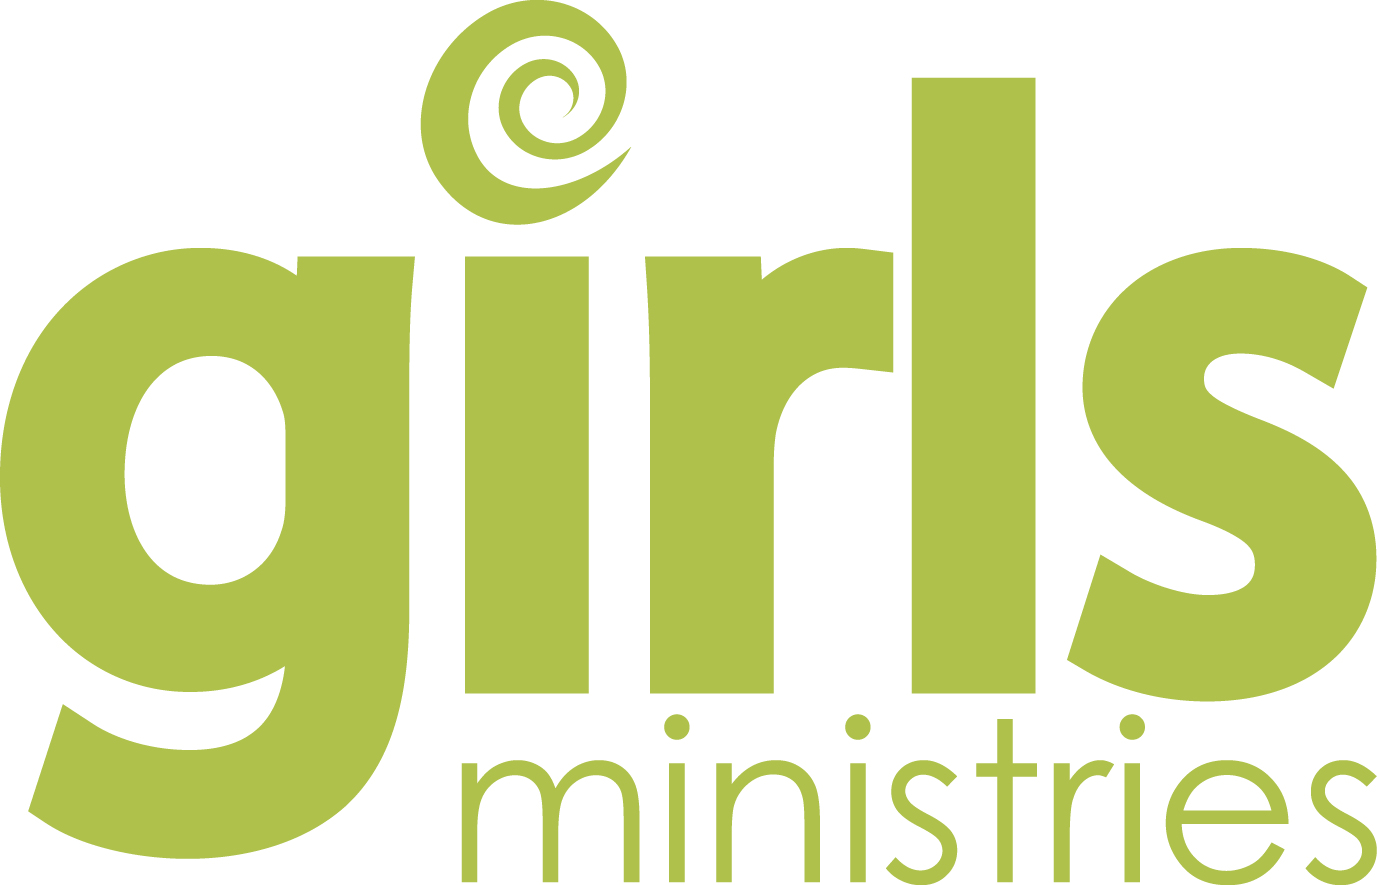 Girls Ministries - Girls Ministries is a discipleship program that has a legacy of godly women coming alongside girls, guiding them on a path to become mature and godly women. Our goal is simple: To see every girl moving toward a deep relationship with Jesus Christ, and to realize her importance and potential in the kingdom of God.